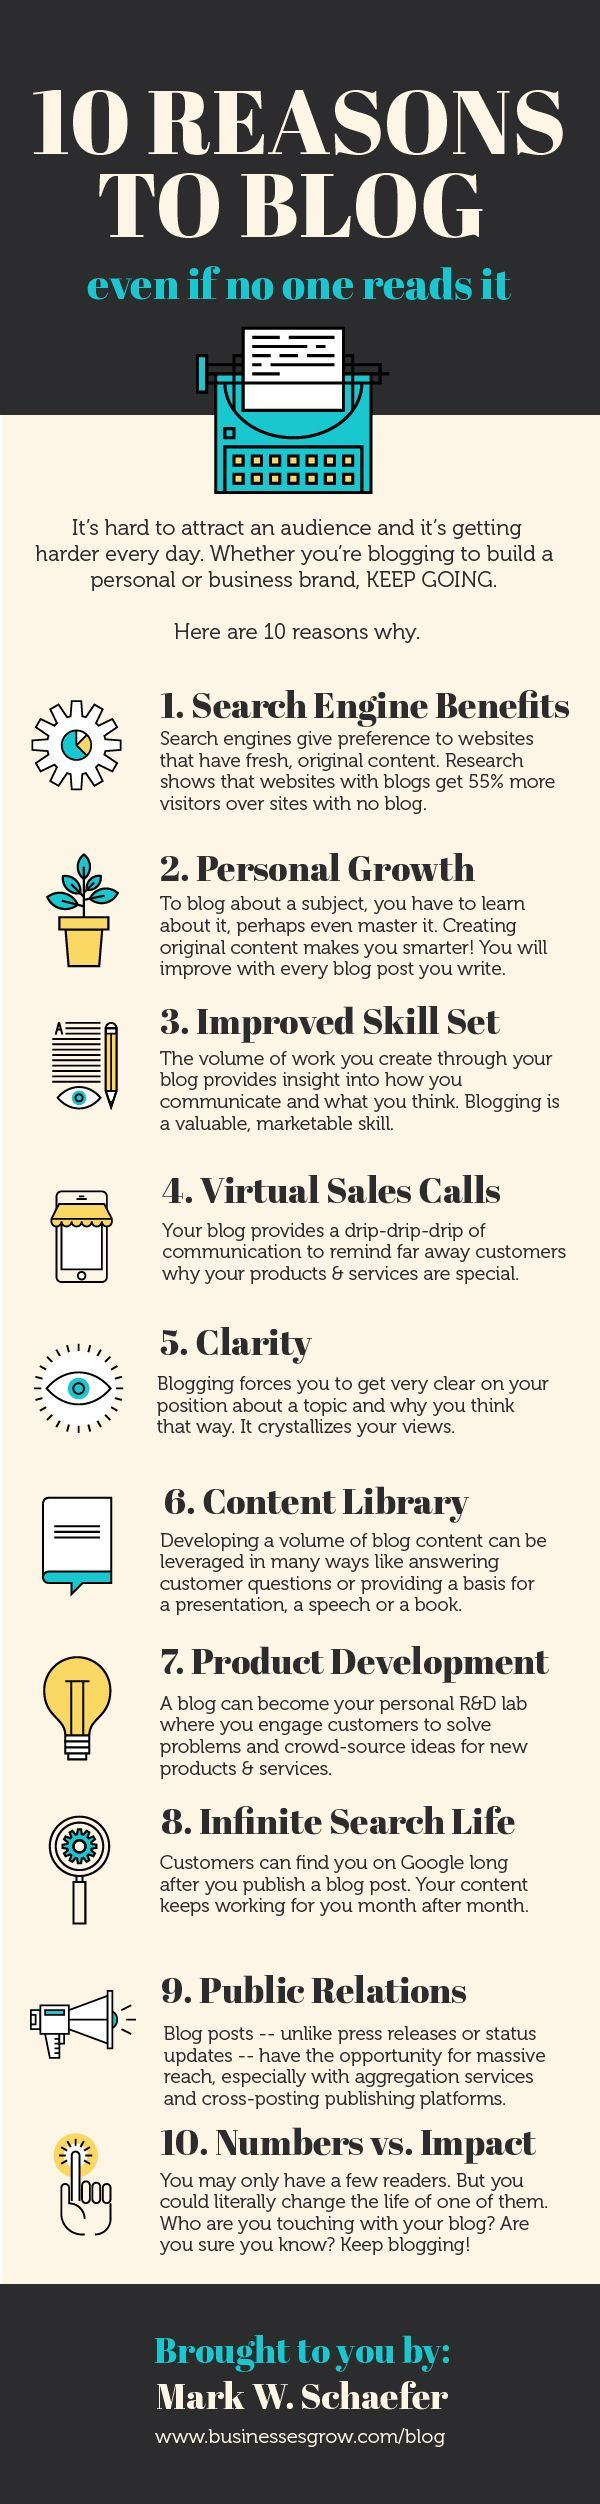 Nobody reading your blog? Trust @markschaefer and persist! Here's 10 reasons why you should keep blogging.